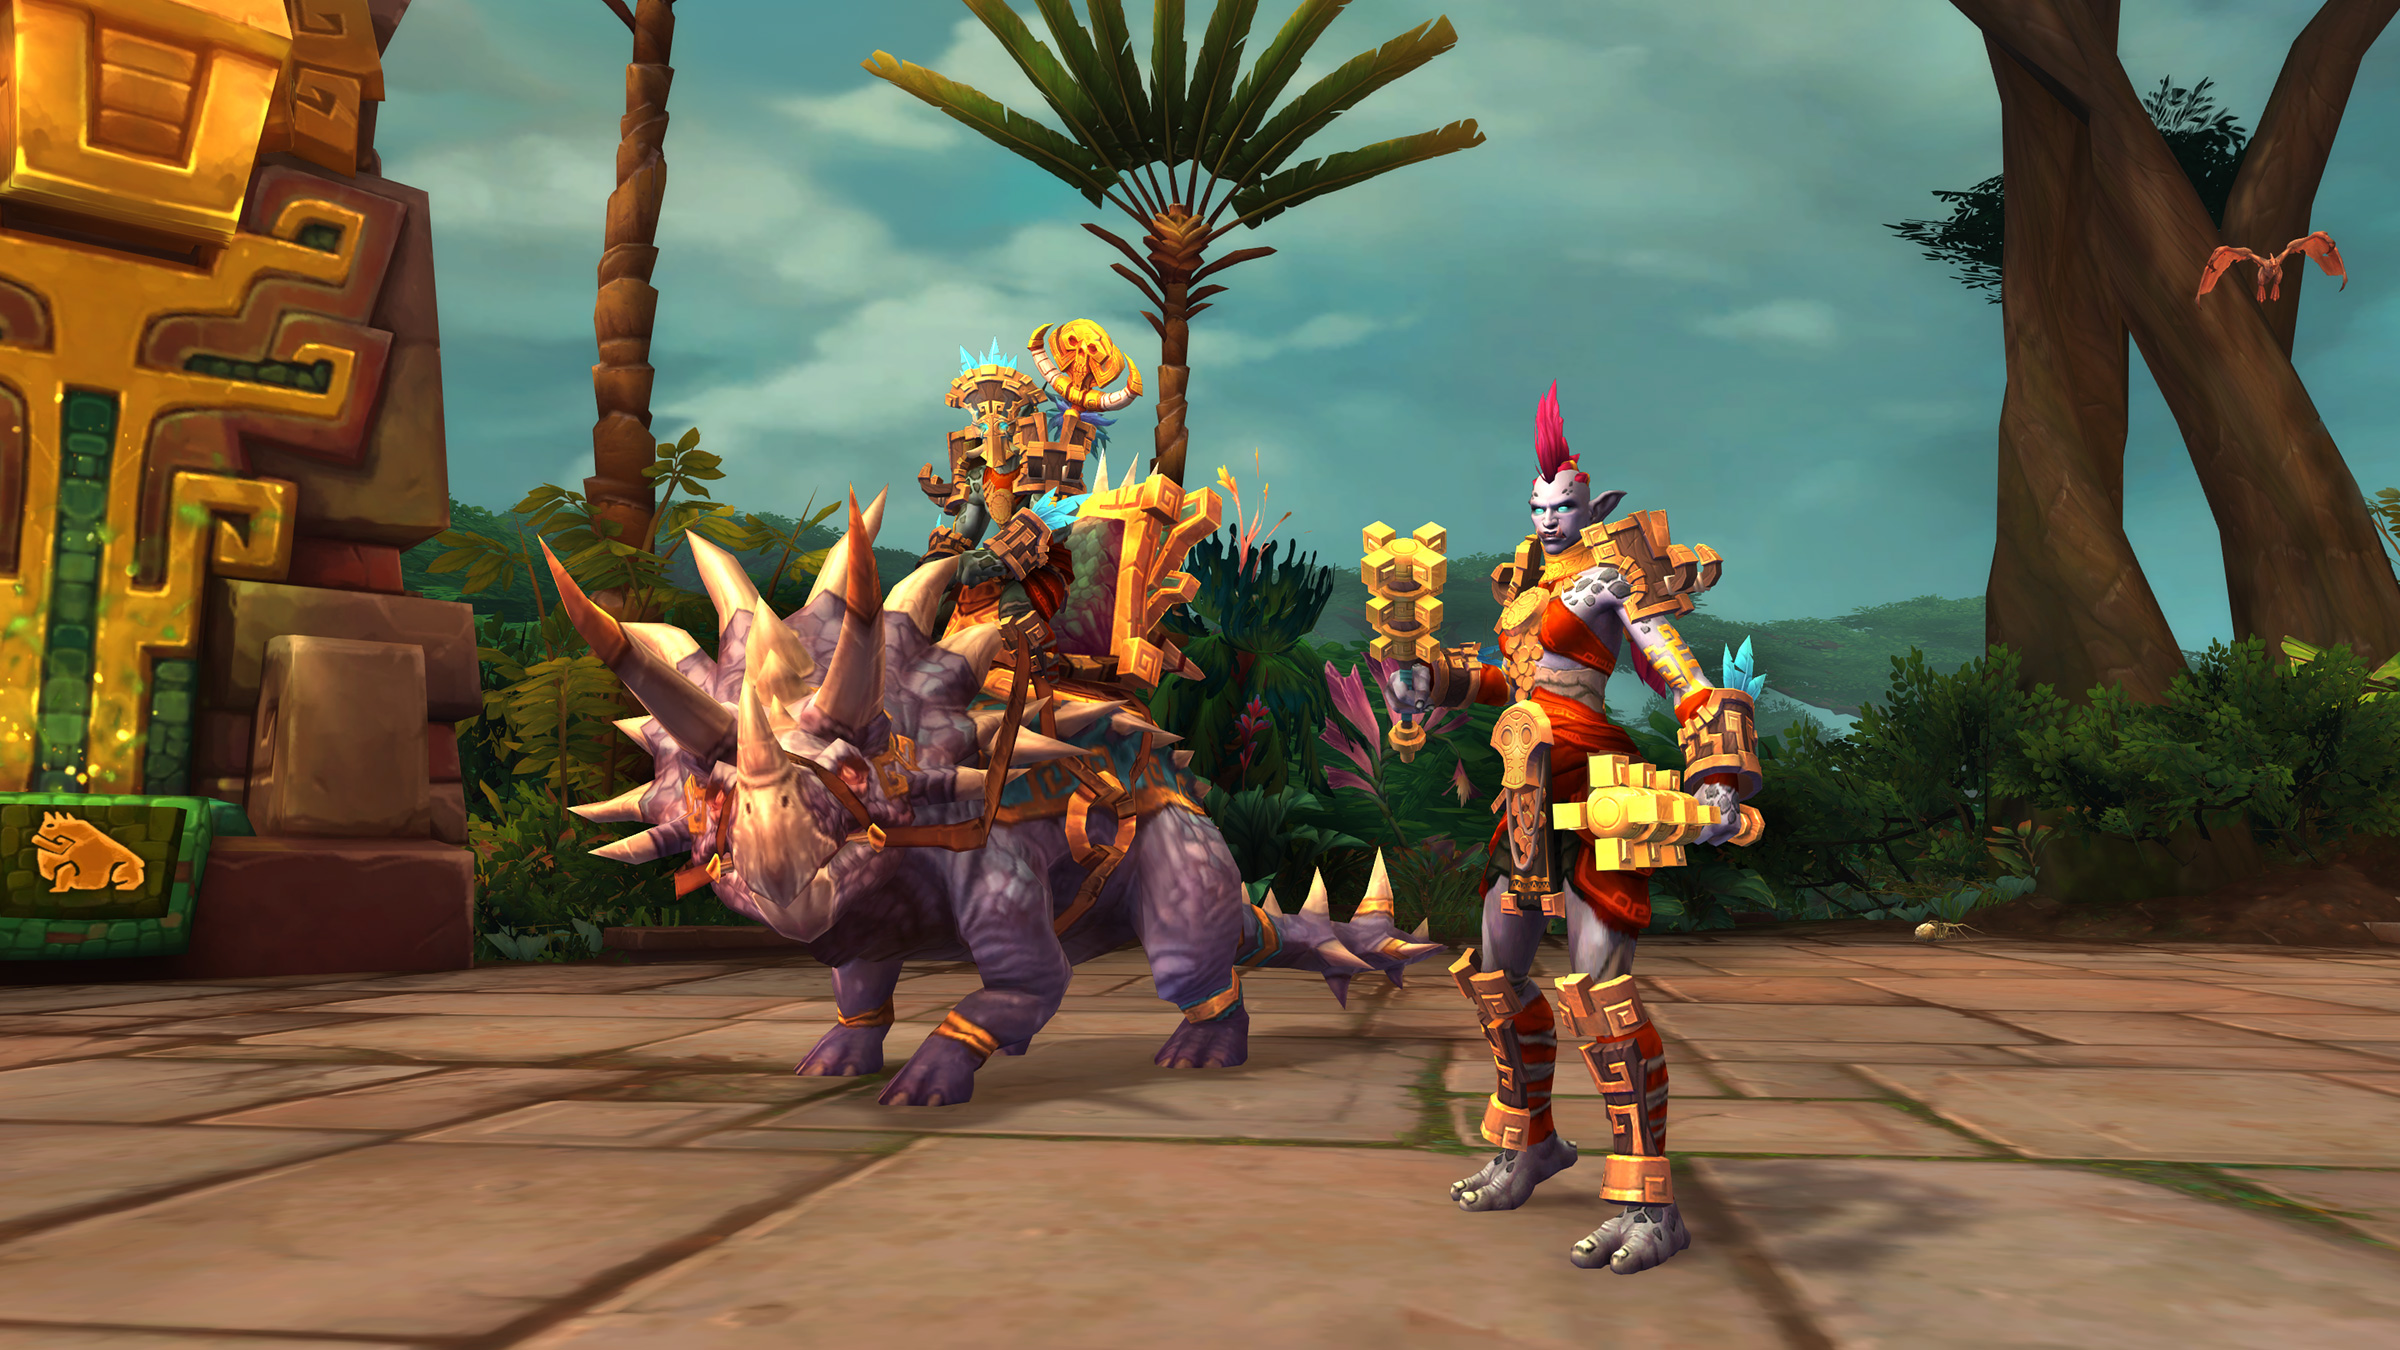 New Allied Races Ahead! Kul Tiran Humans and Zandalari Trolls